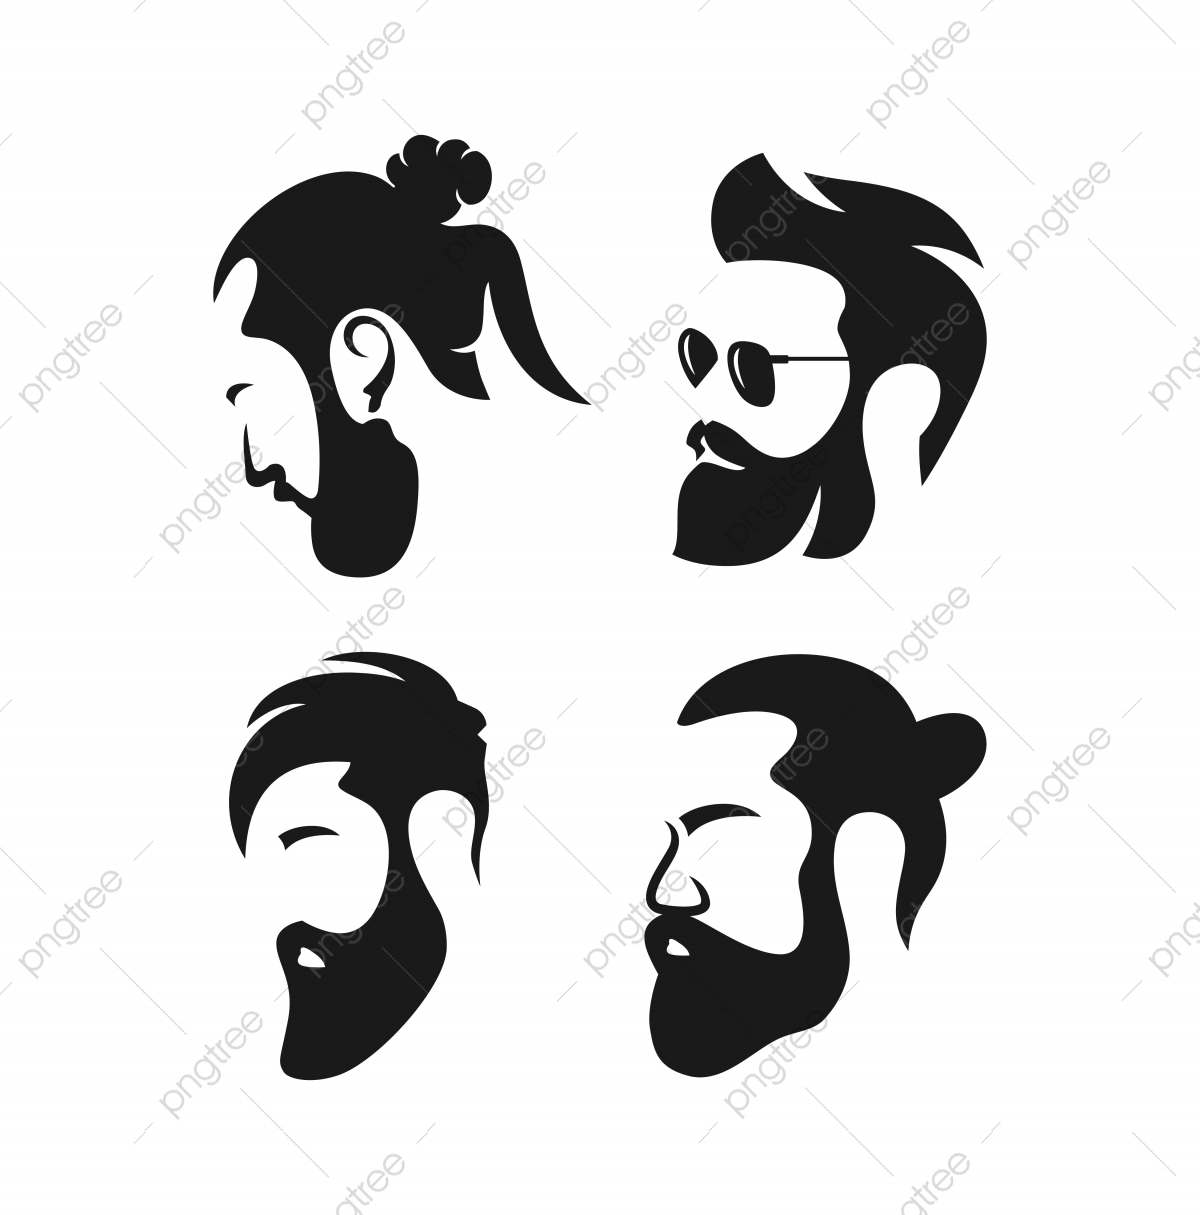 Hair Salon Logo Png Vector Psd And Clipart With Transparent Background For Free Download Pngtree